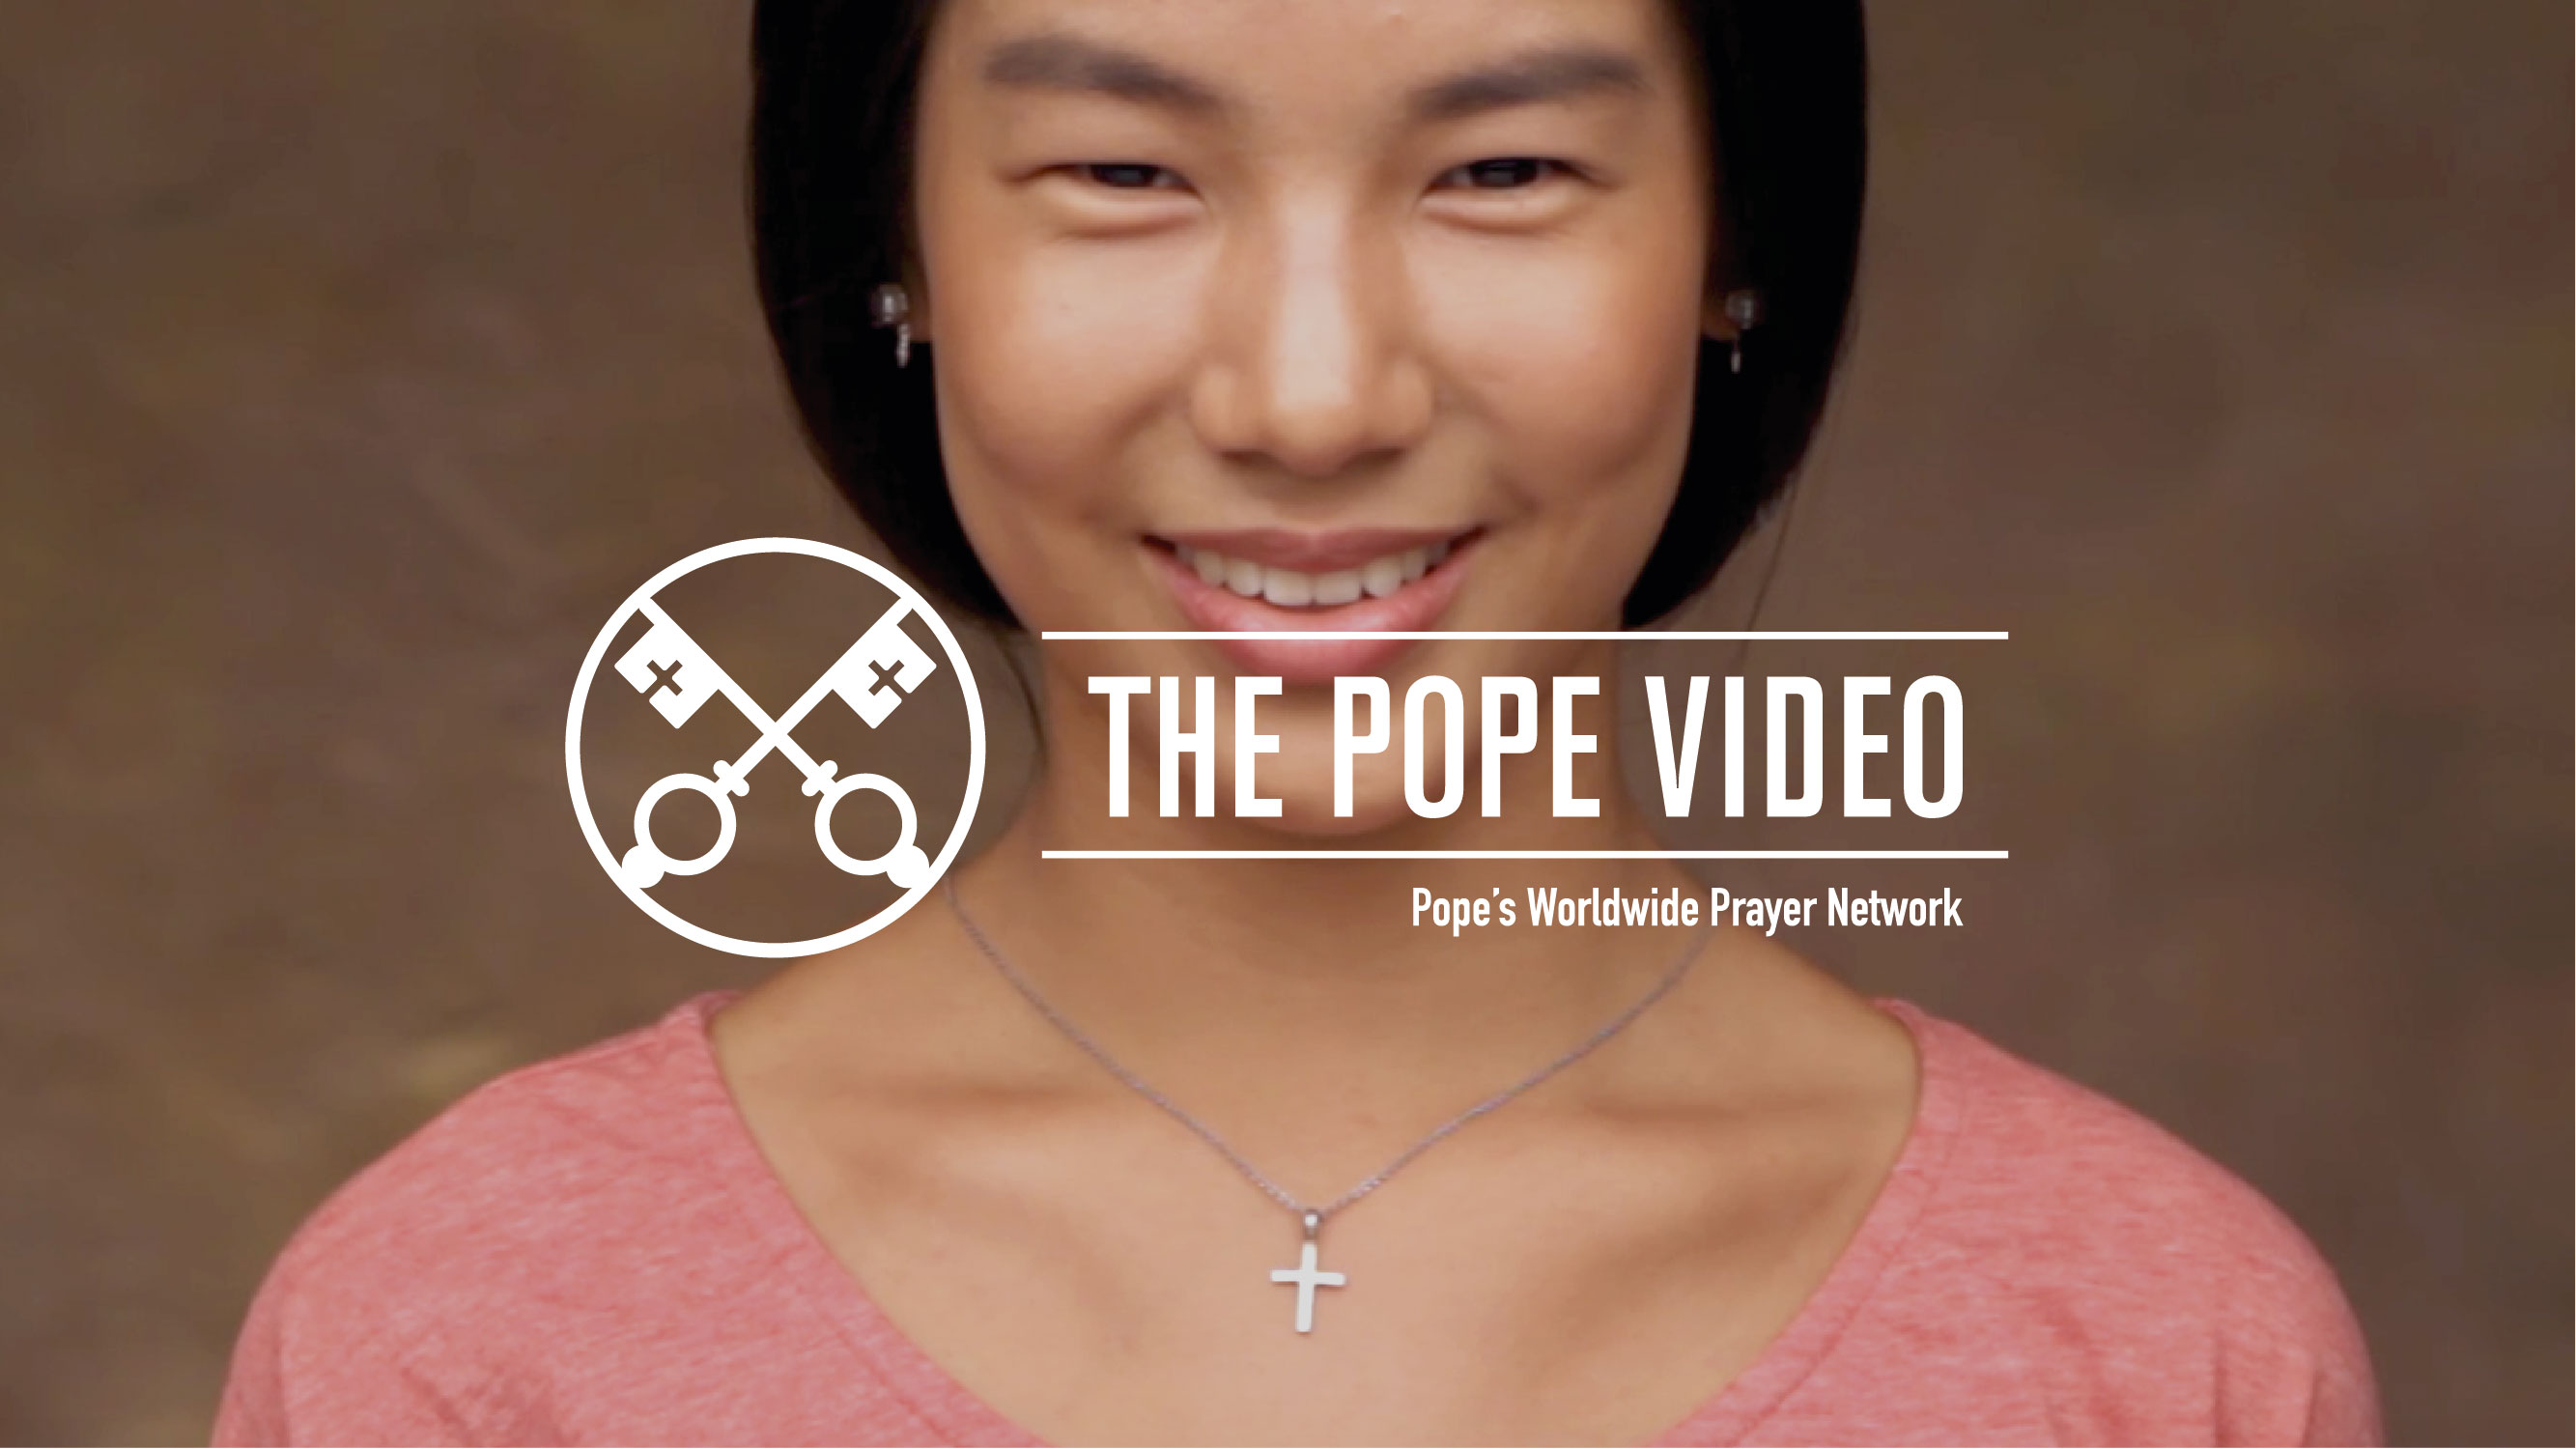 The Pope Video: Francis urges the Christians of Asia to encourage dialogue and peace